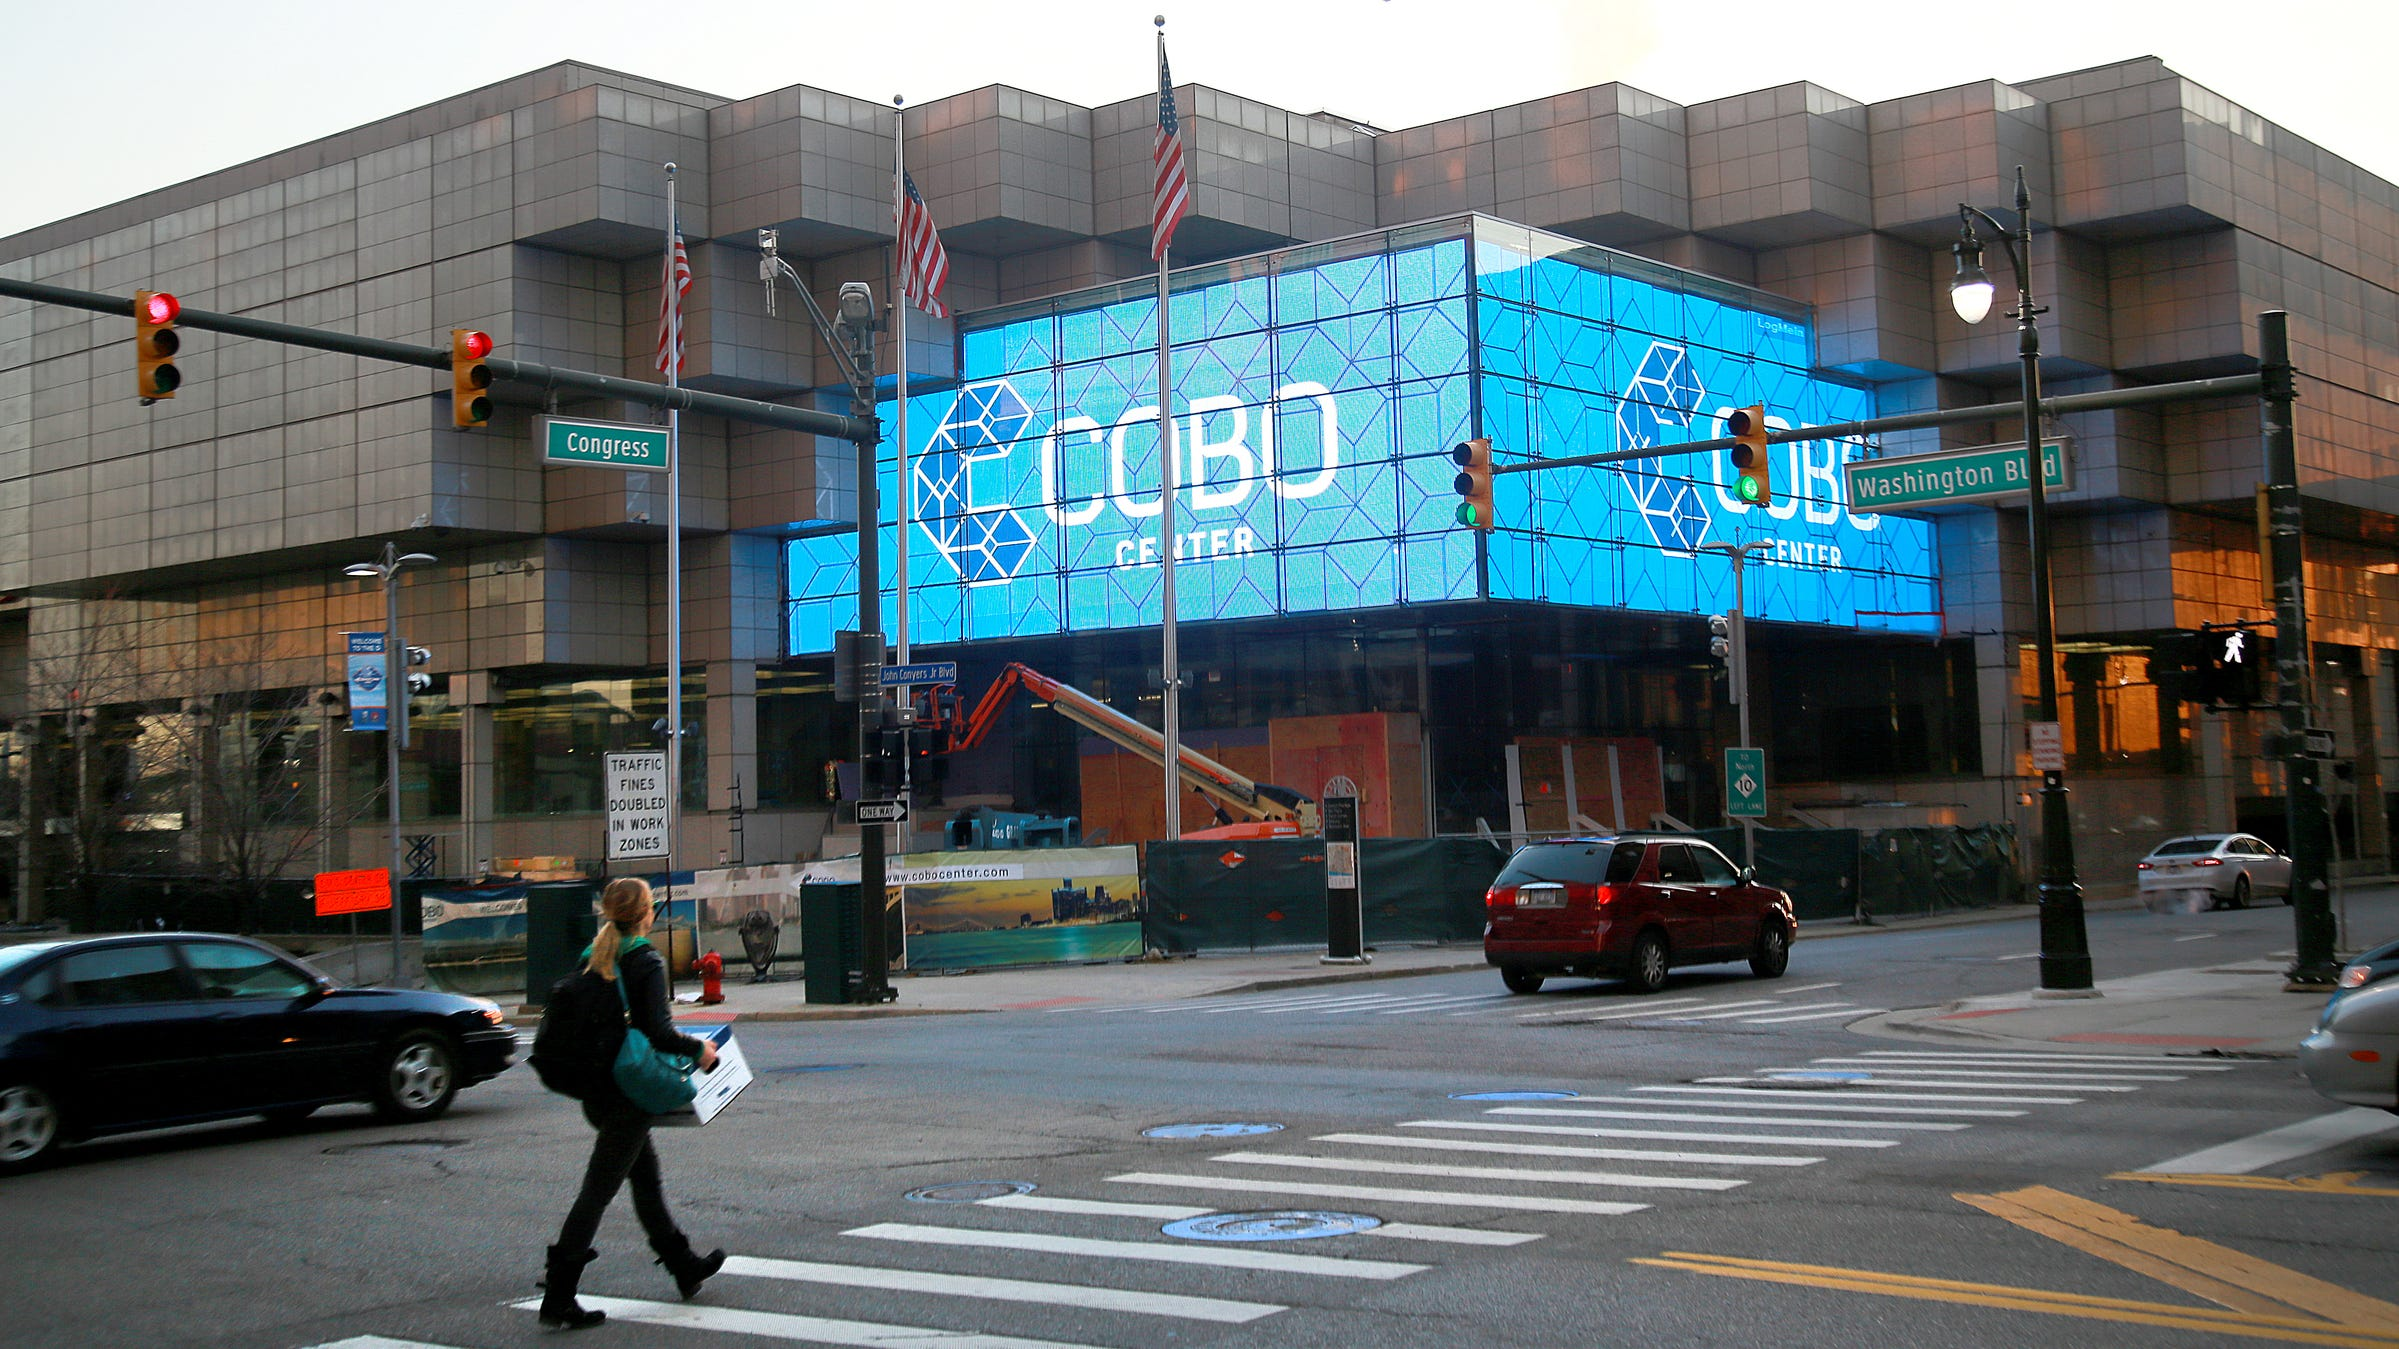 Cobo Center in Detroit to get new name, new history